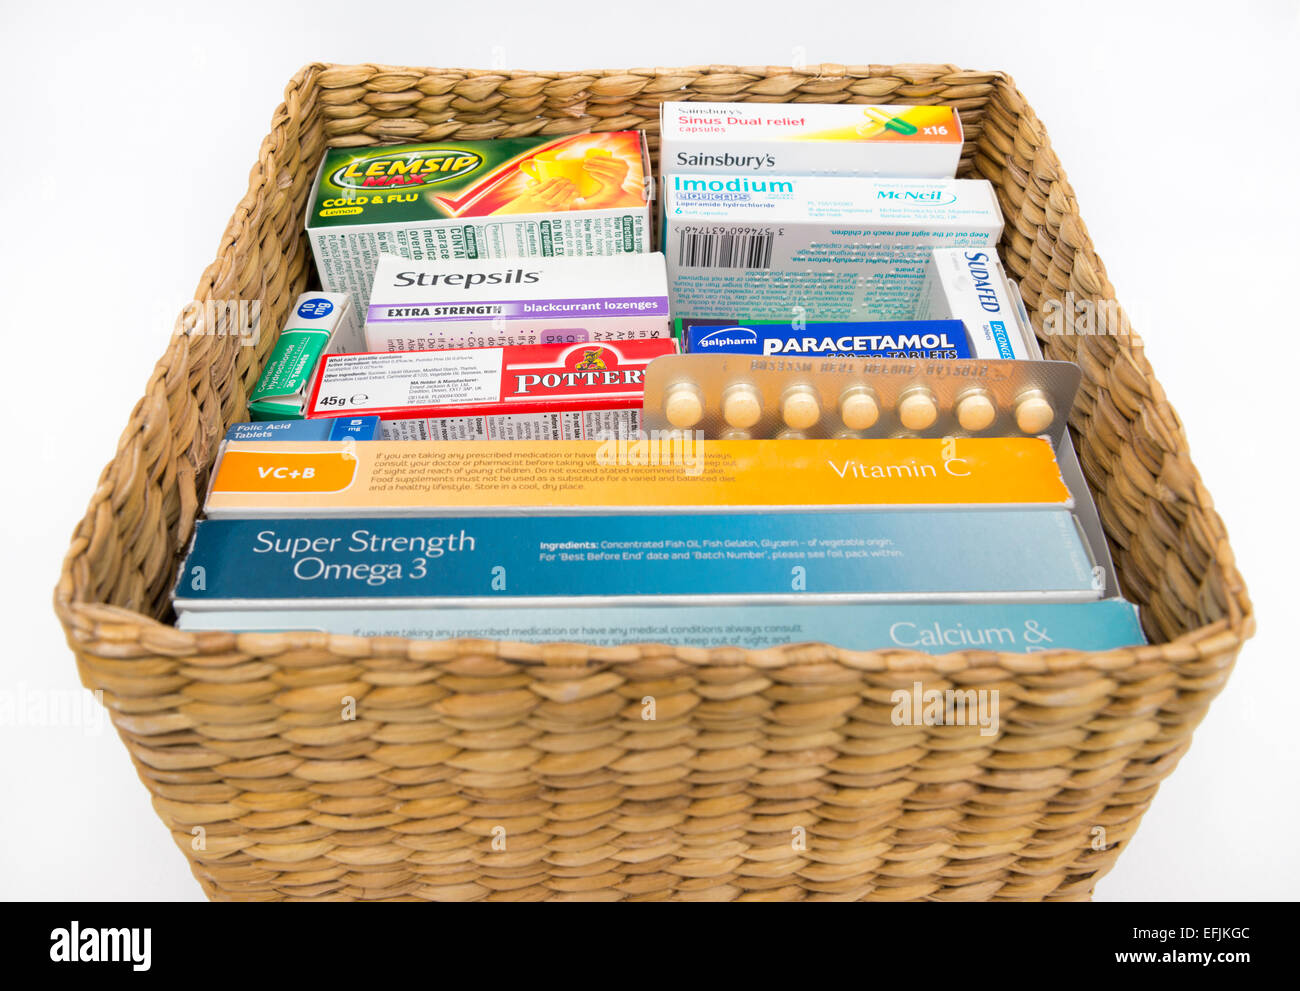 A basket of vitamins, remedies and medicine. - Stock Image